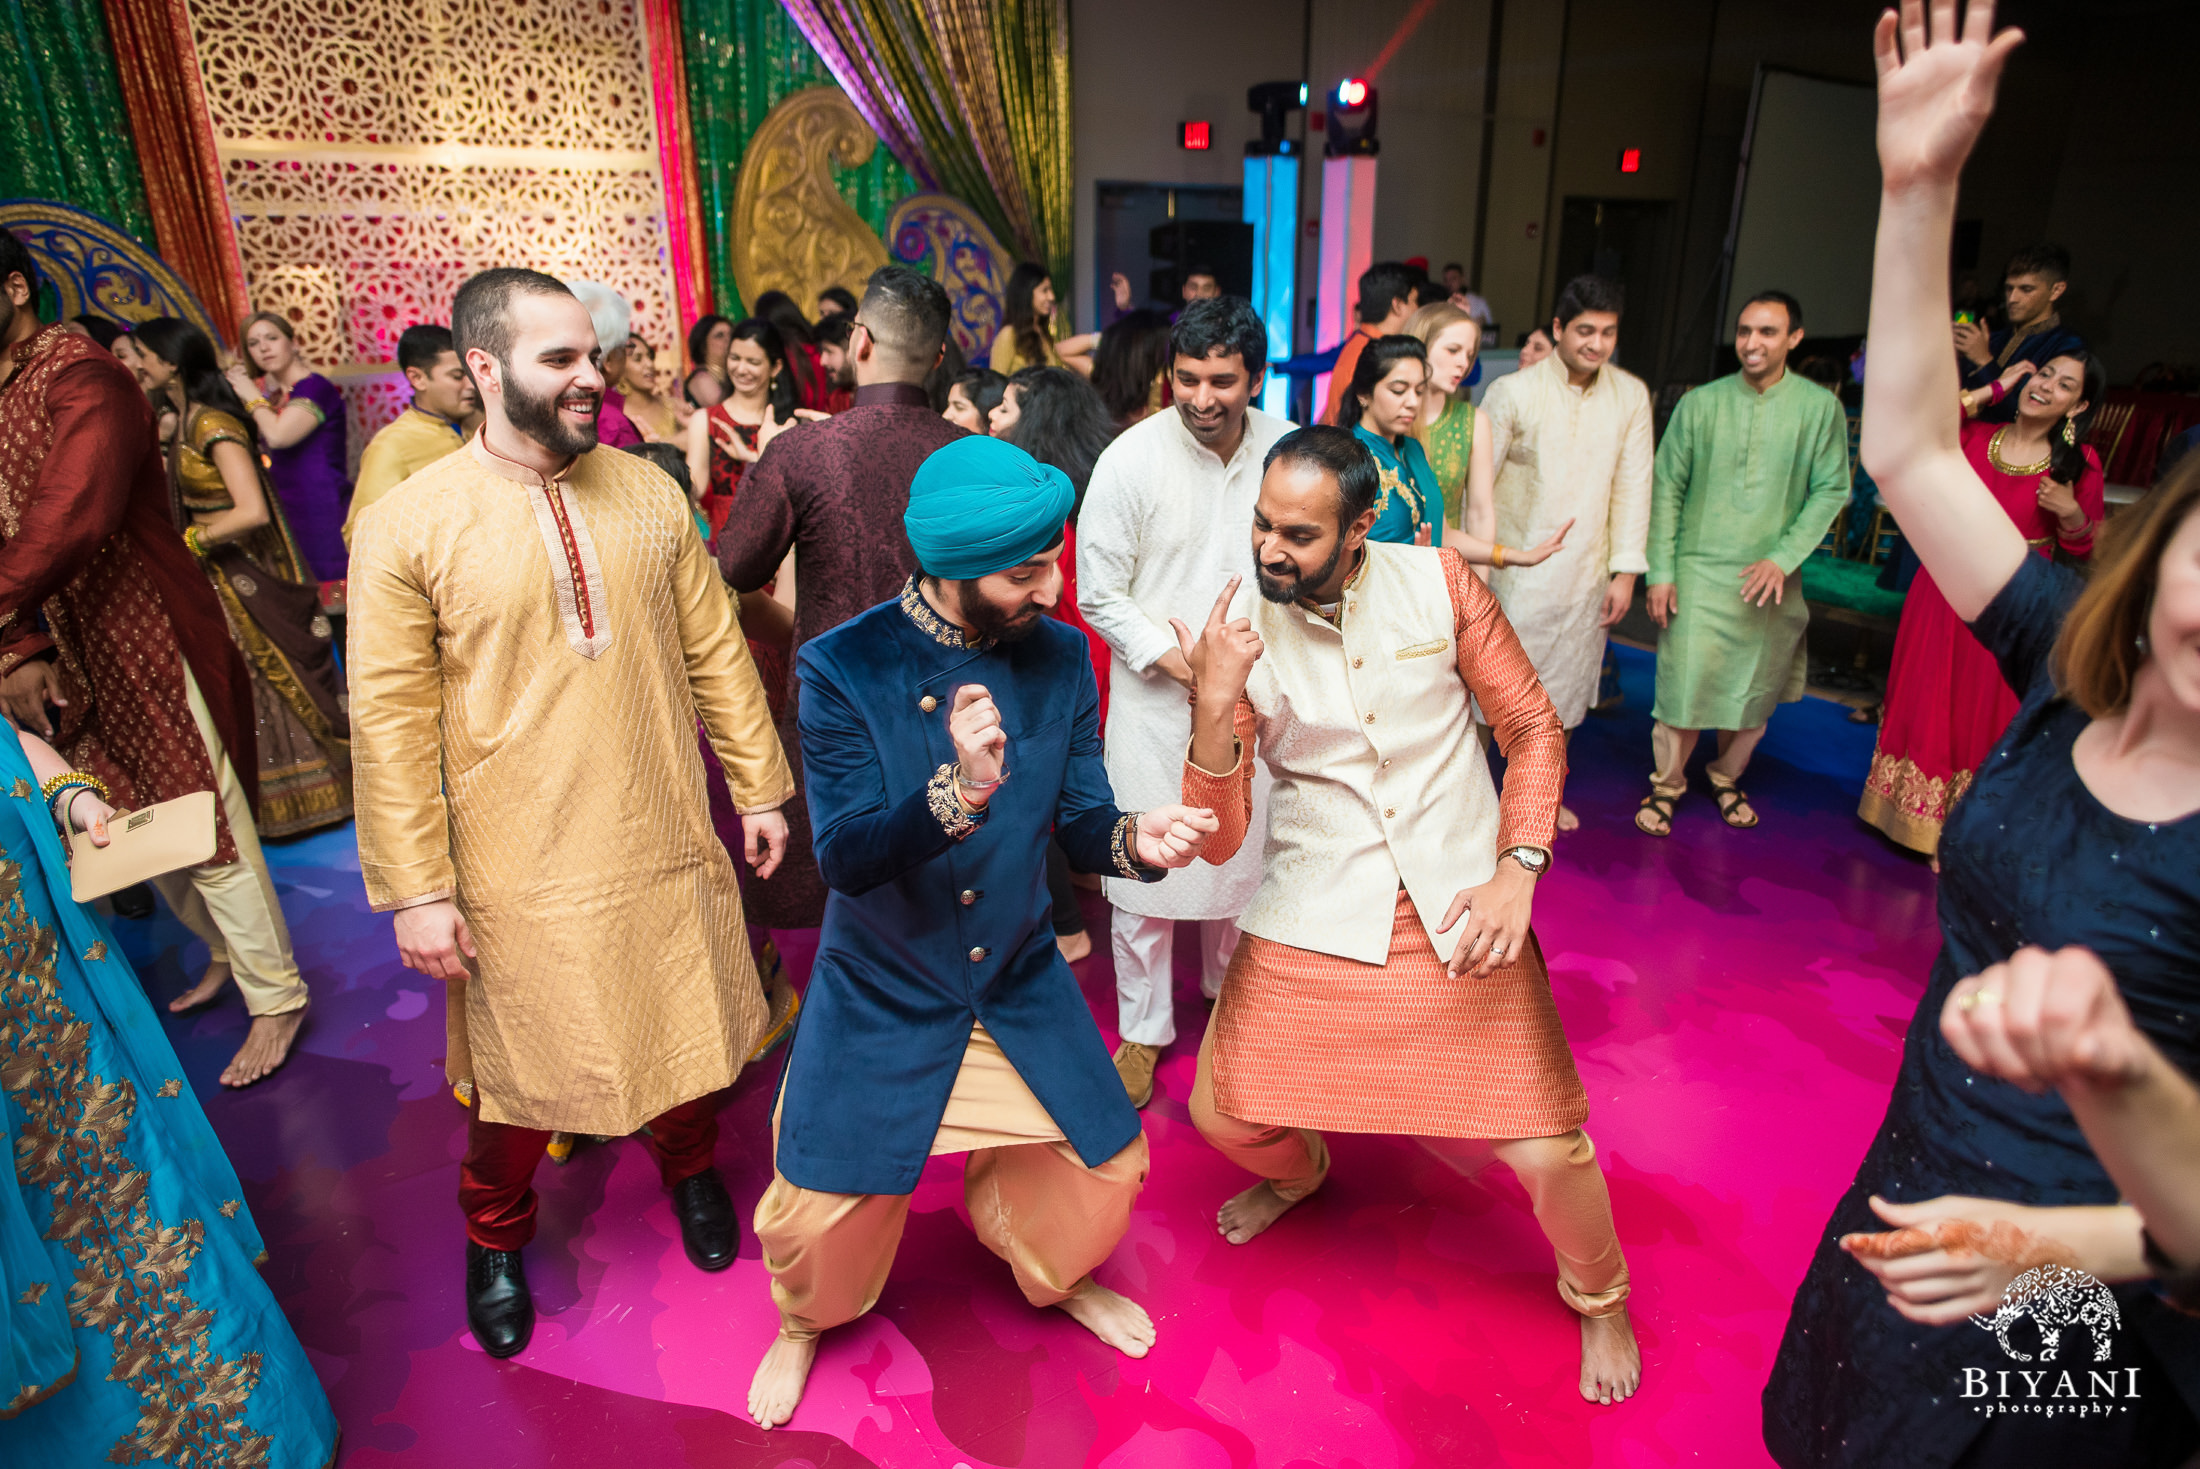 Punjabi groom on the dance floor